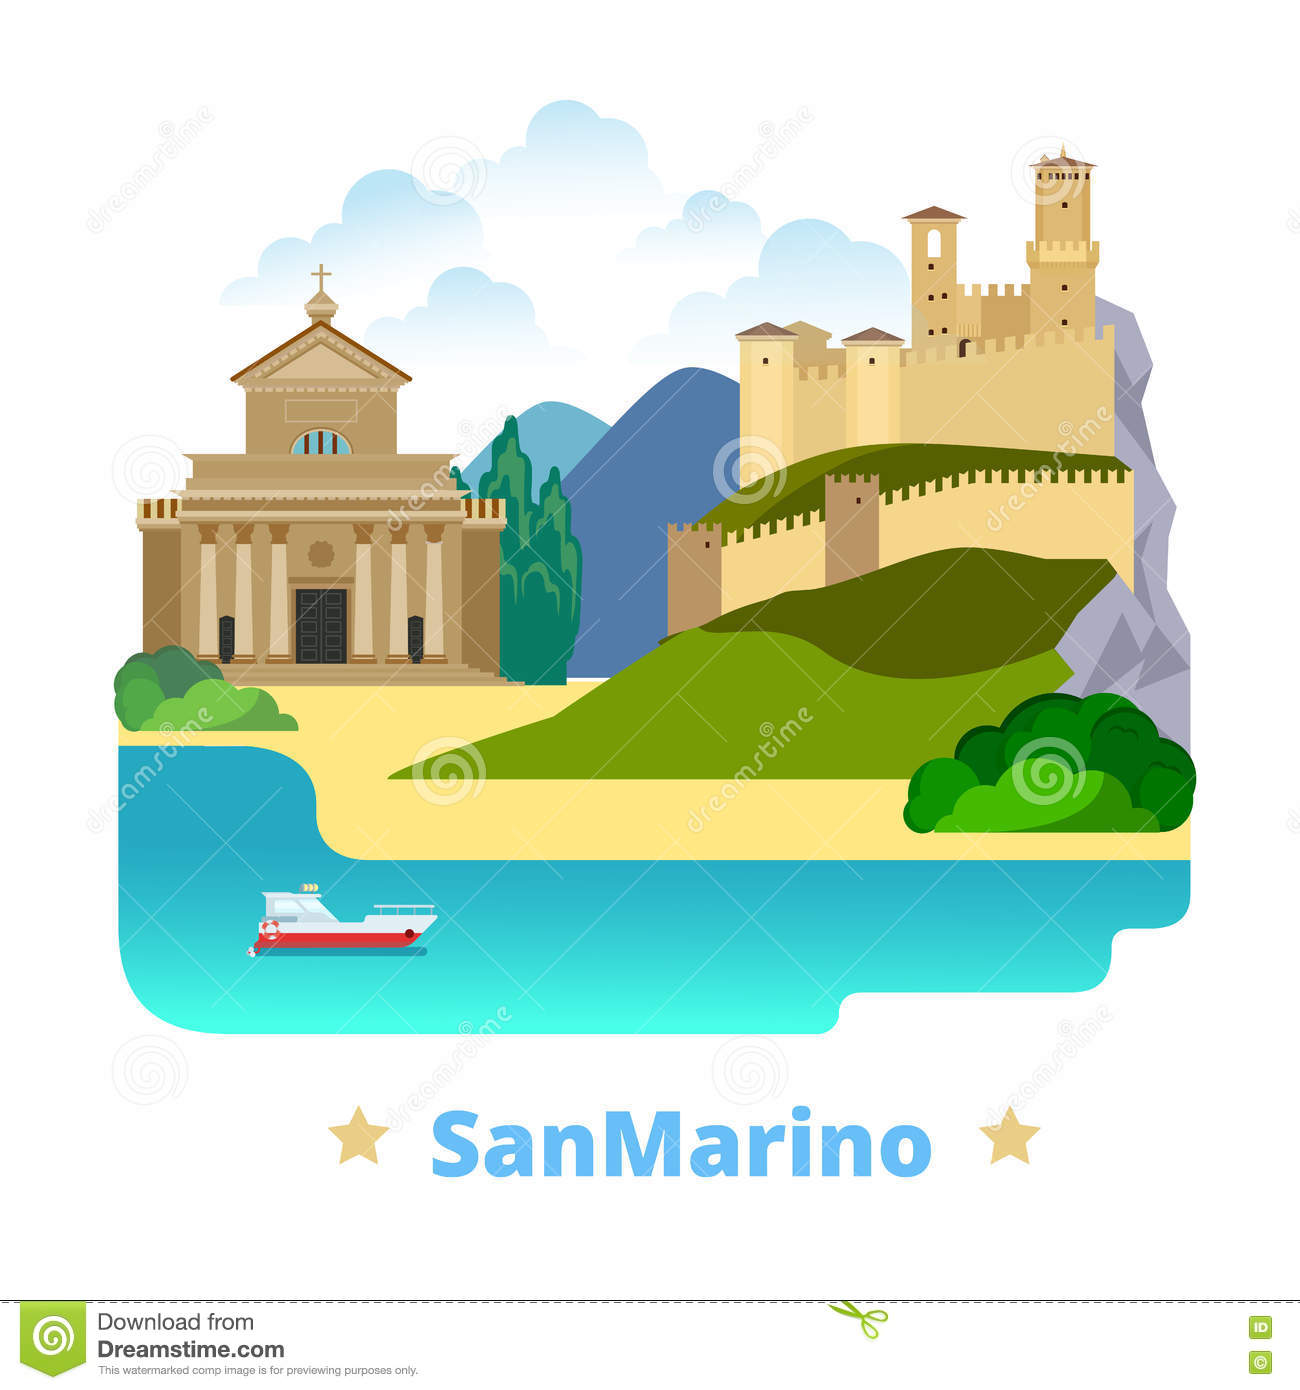 San Marino Country Design Template Flat Cartoon St Stock Vector ...